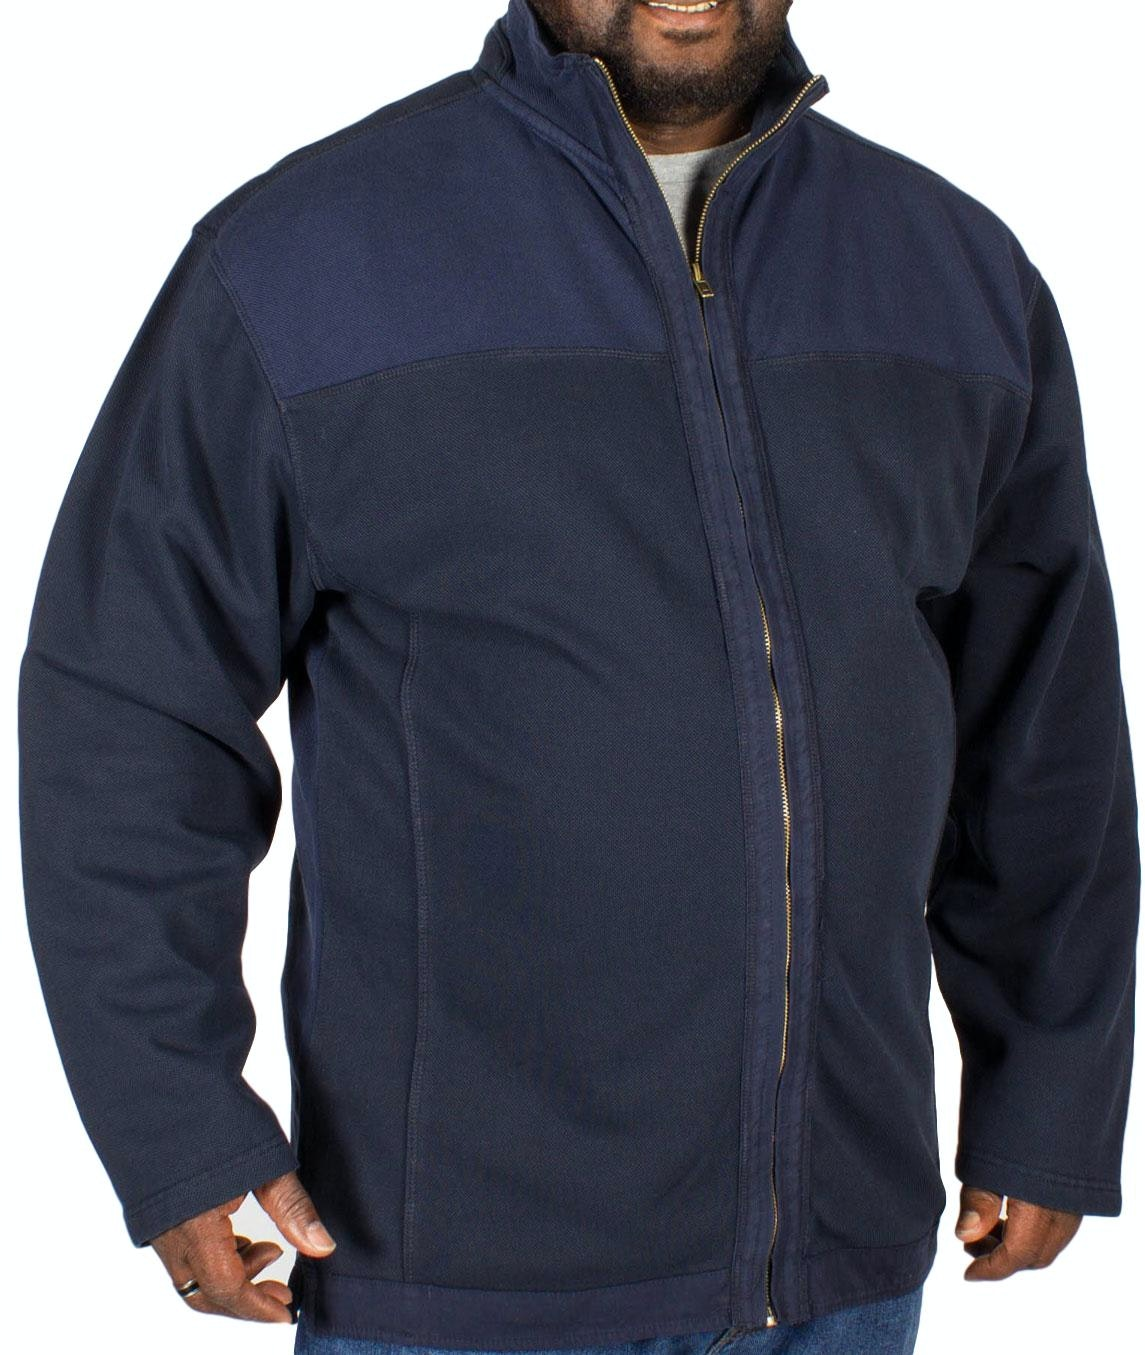 KAM Full Zip Top Navy